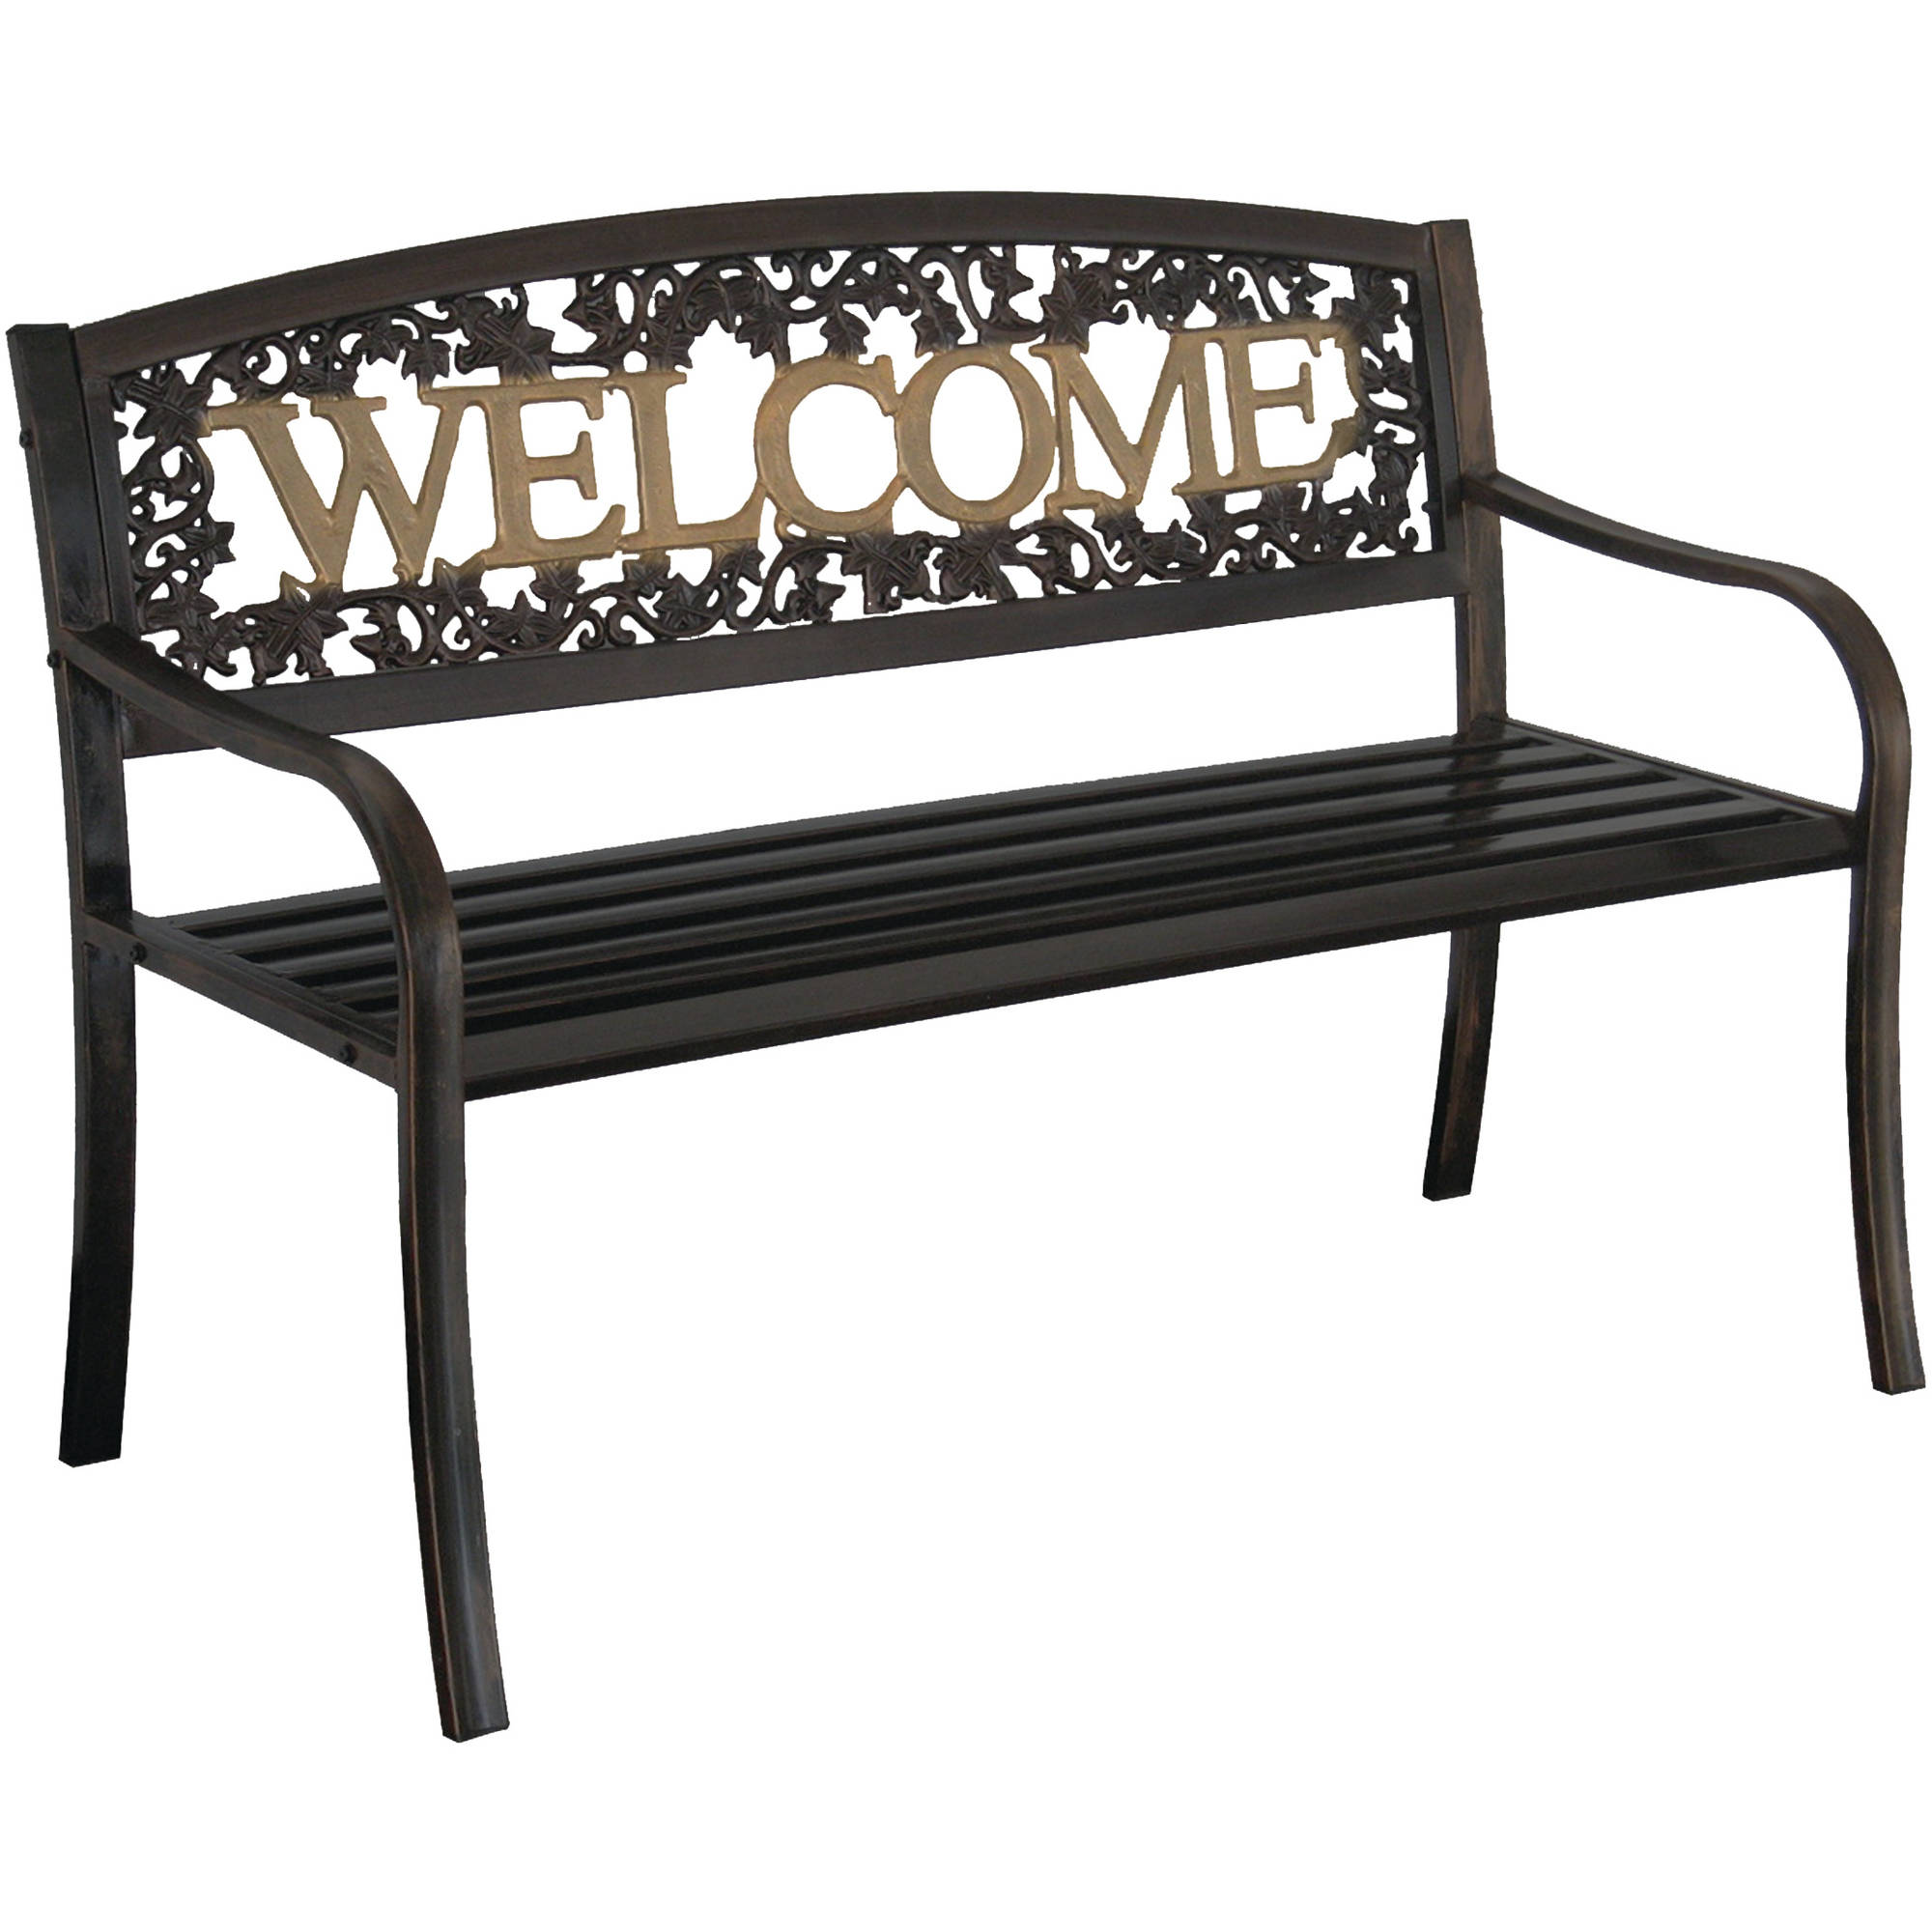 Black Bench Leigh Country Welcome Outdoor Garden Bench Black Gold